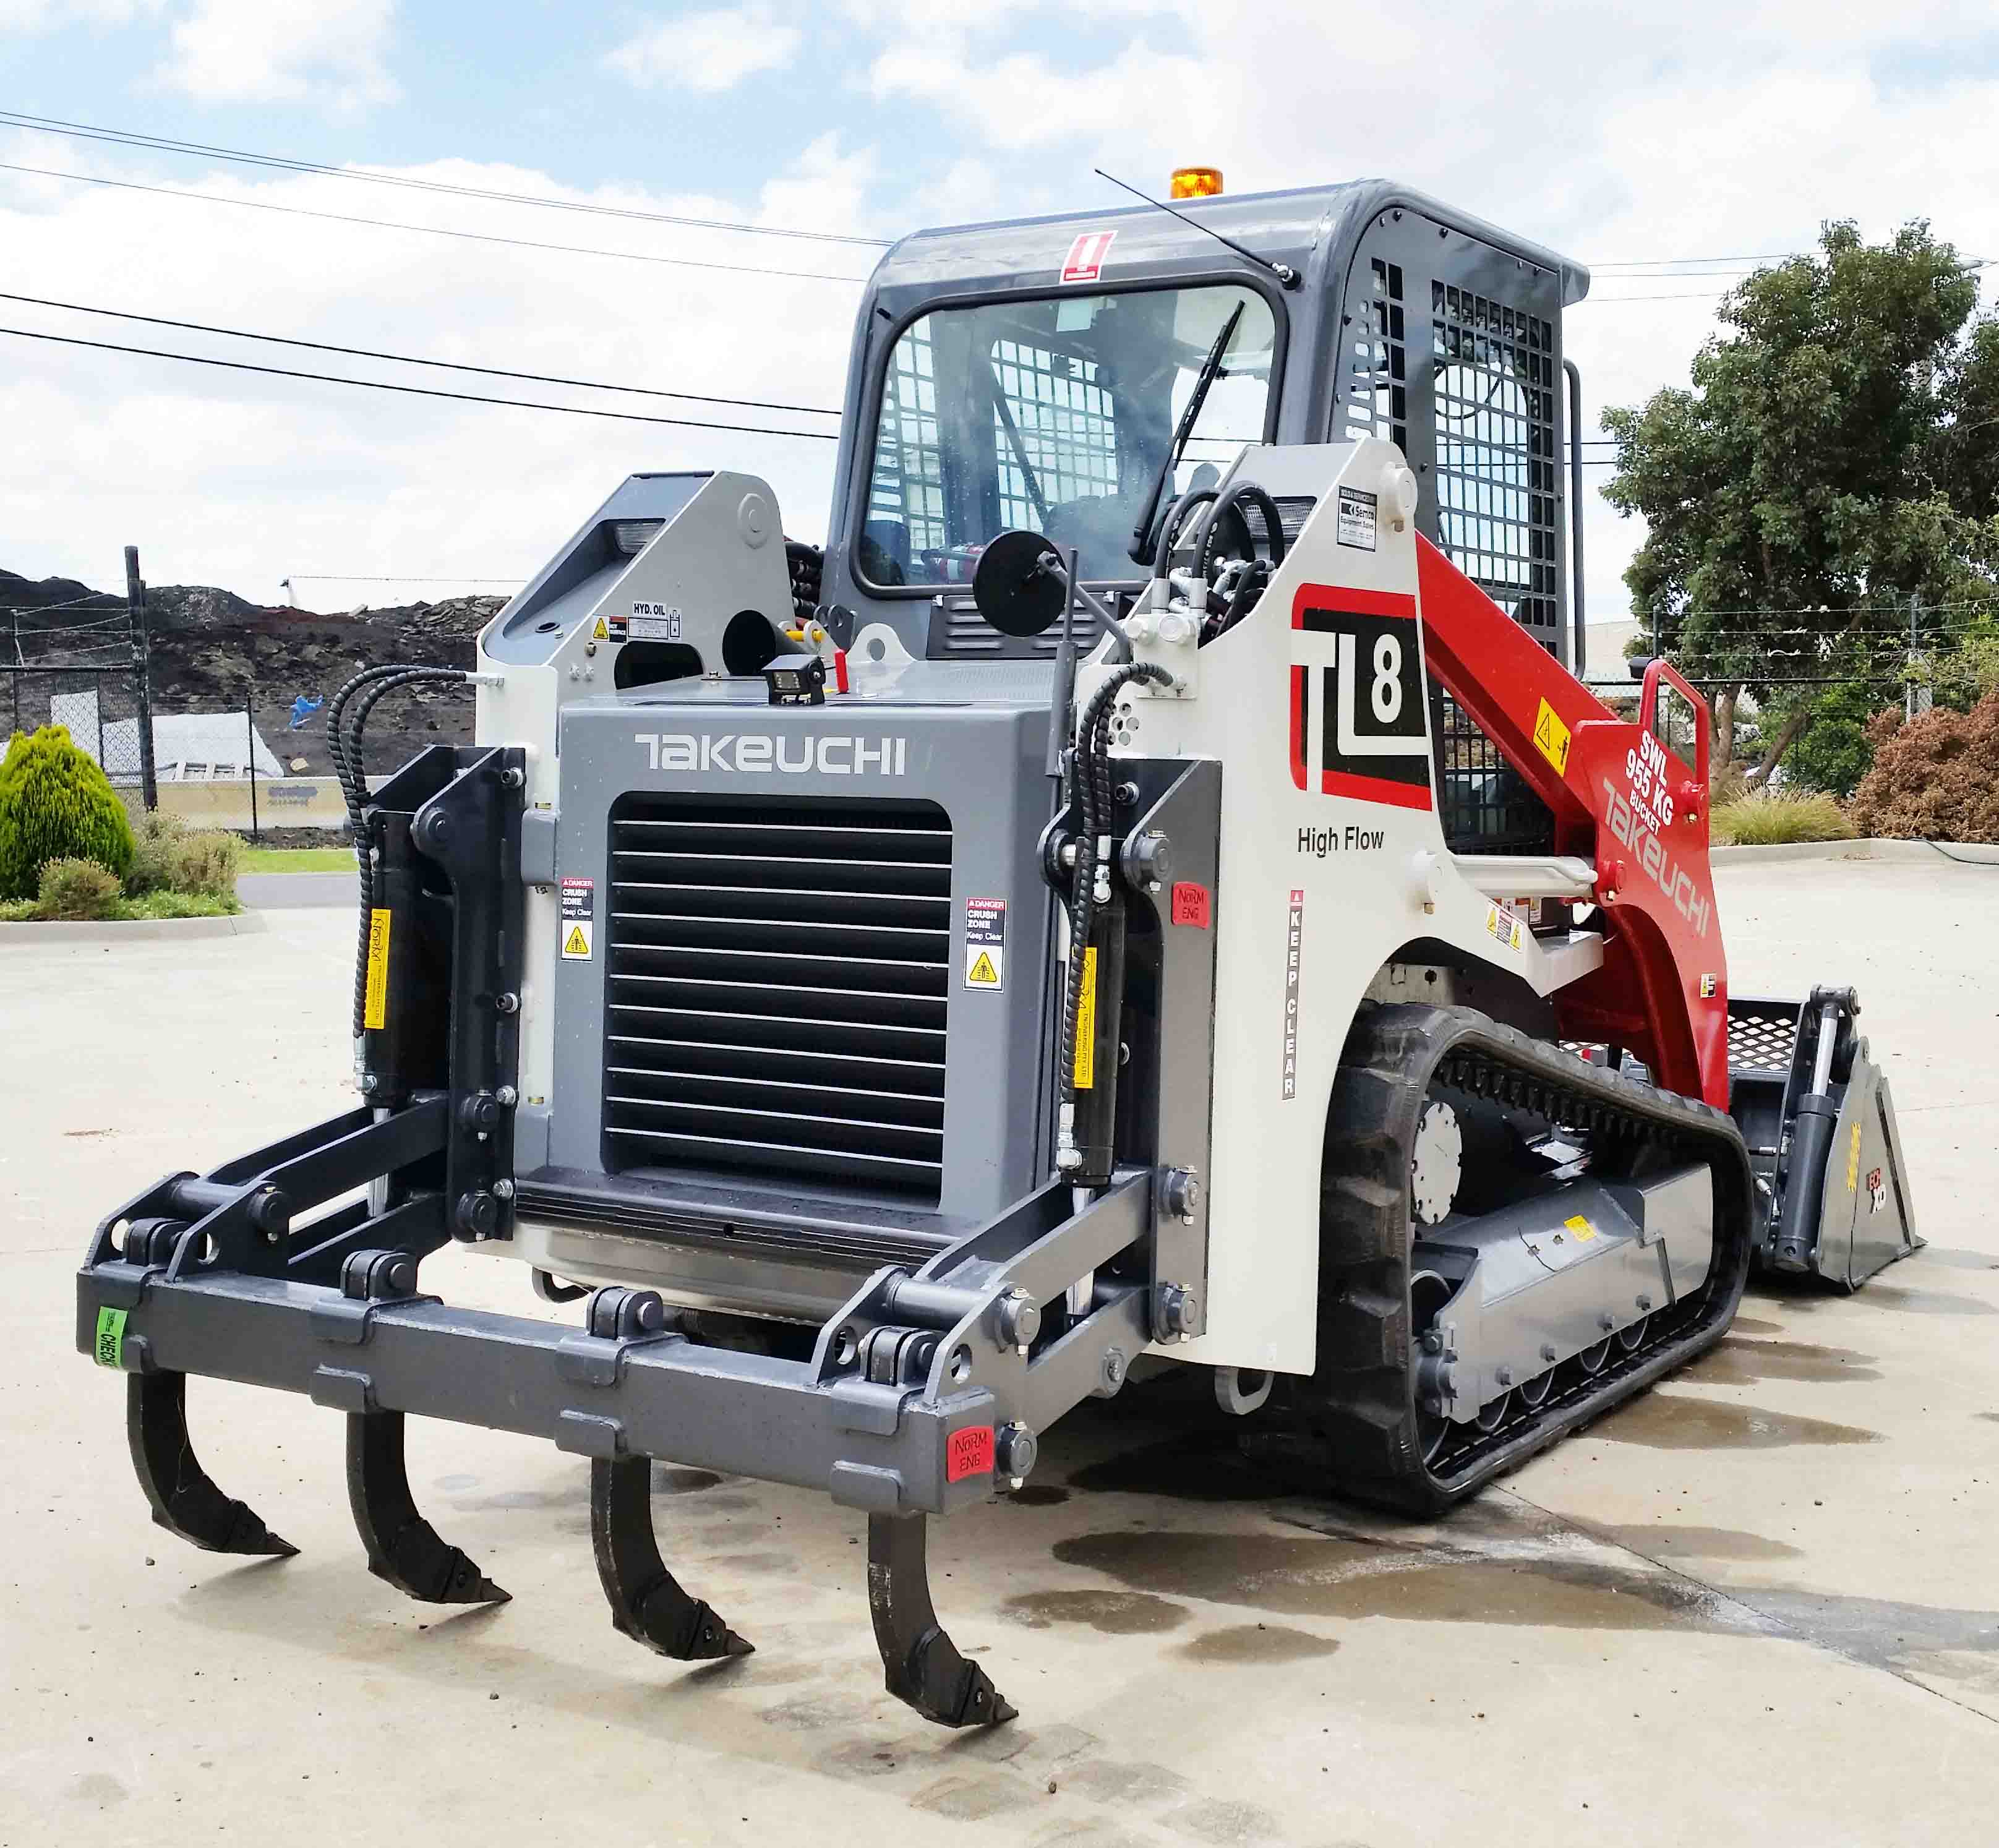 Ground Breaking Takeuchi Tl10 Is A Ripper Semco Group